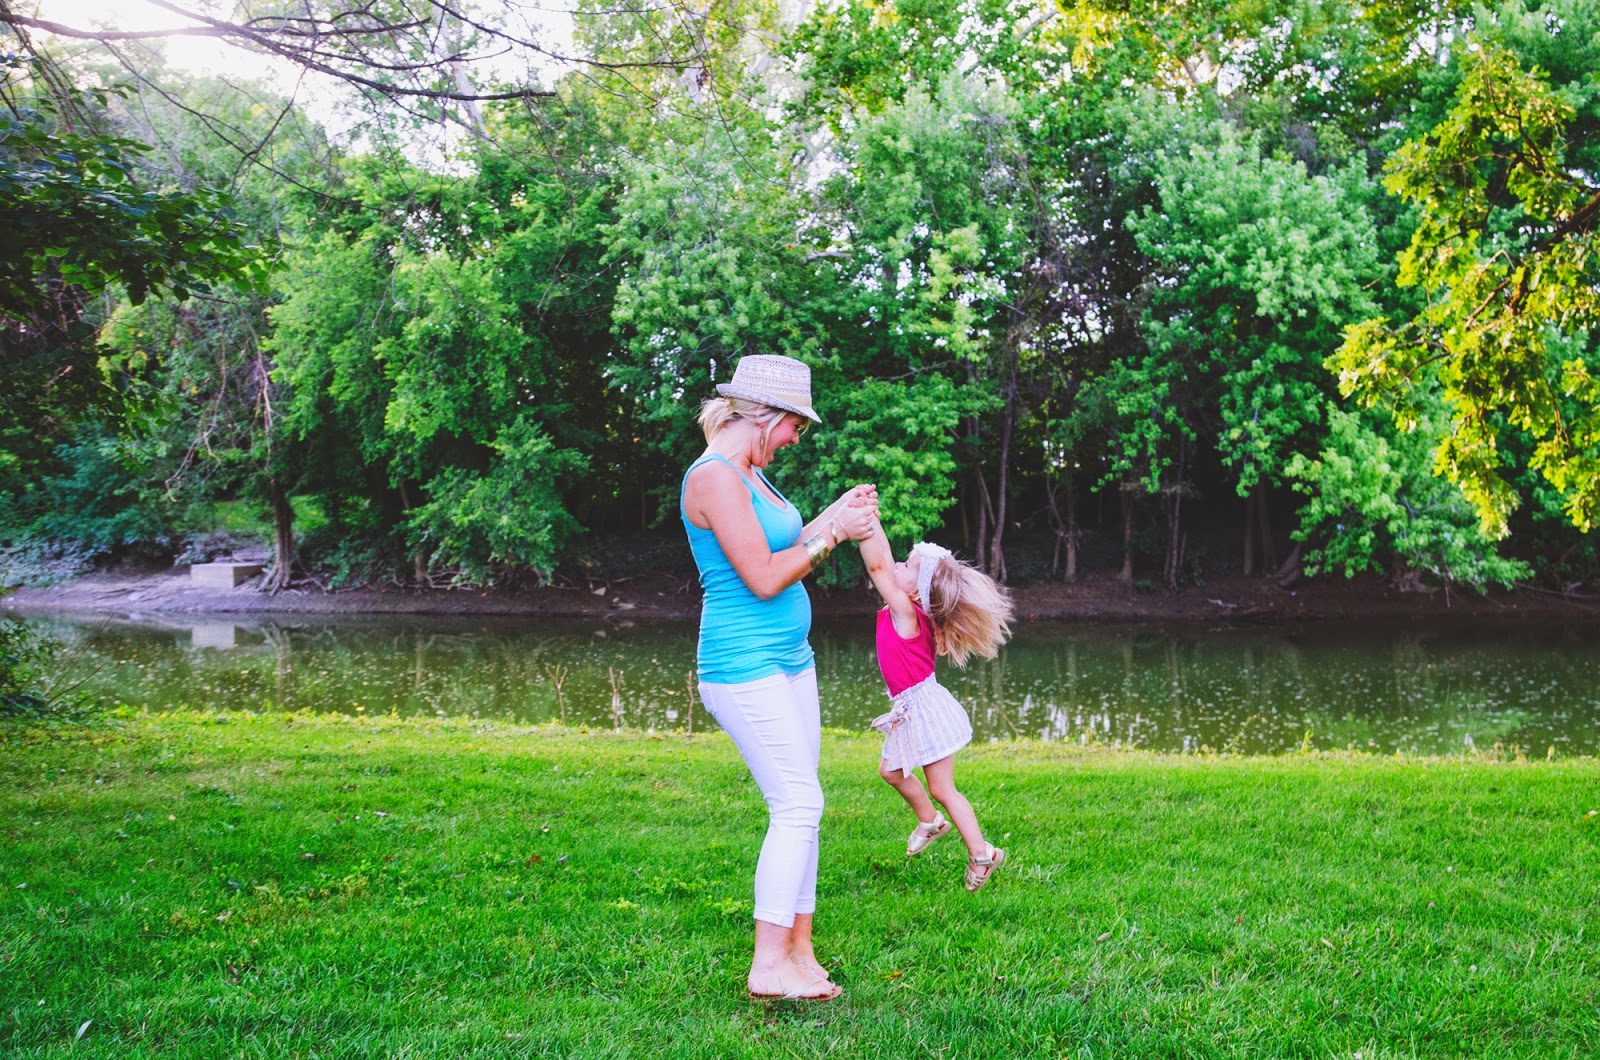 indianapolis family photographer captures mom and daughter playing